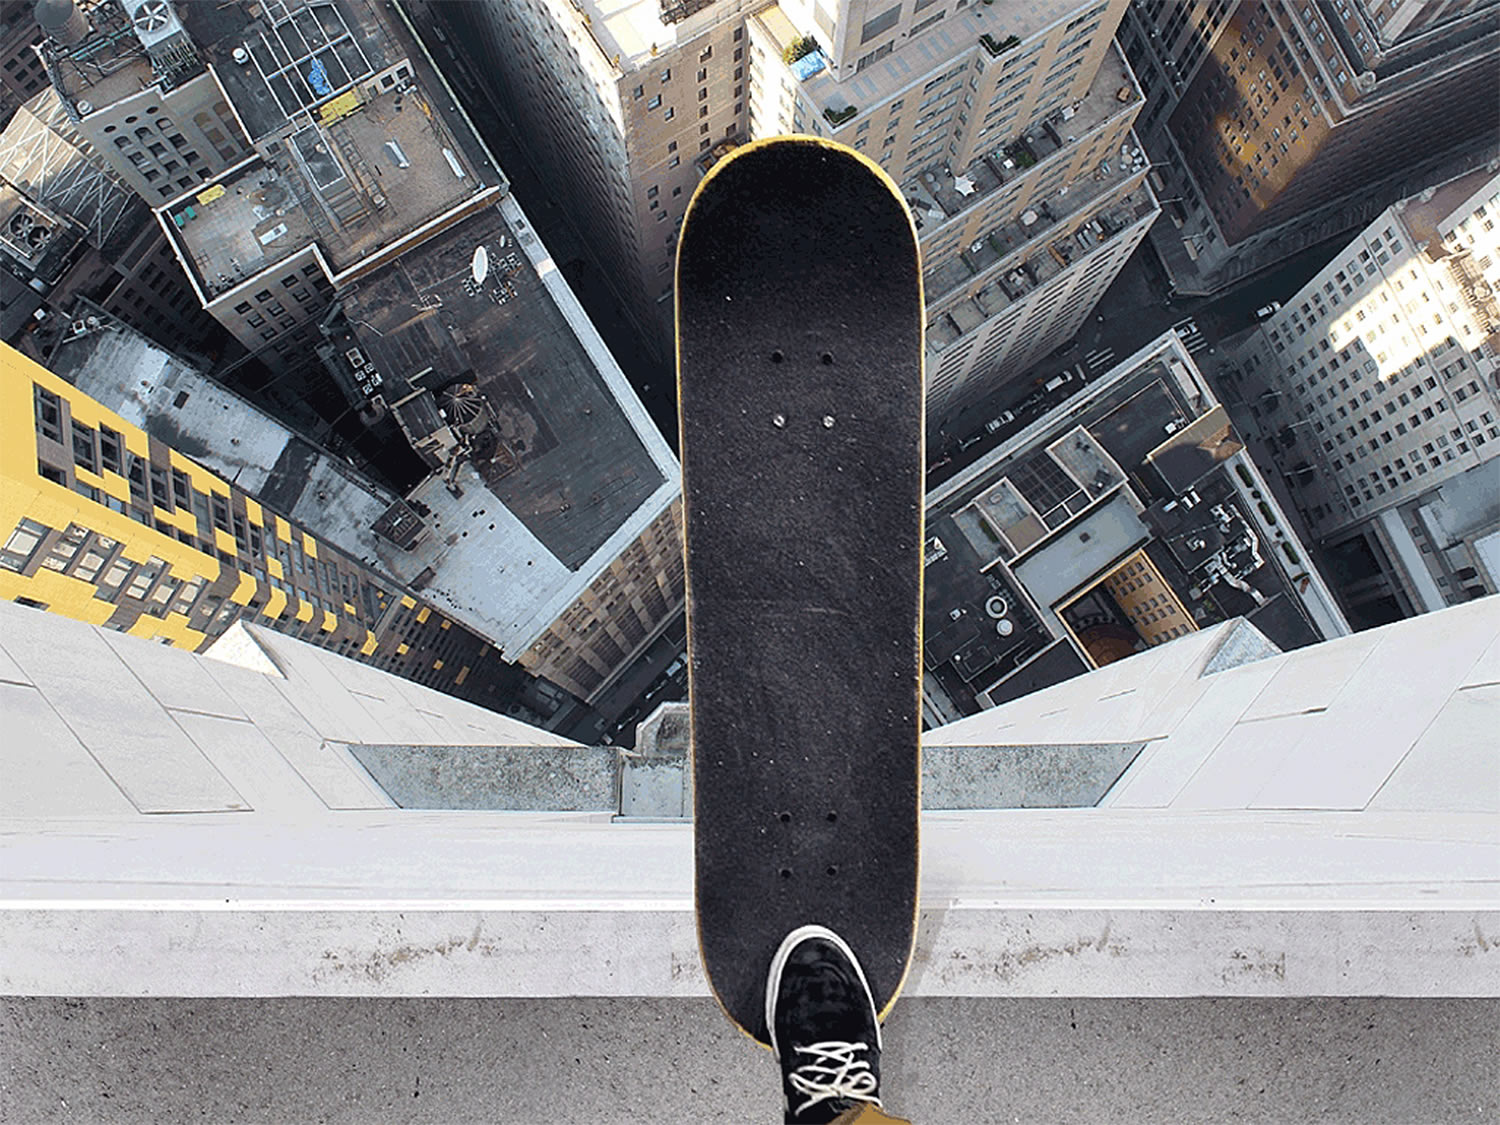 skateboarding down the skyscraper, by nois7